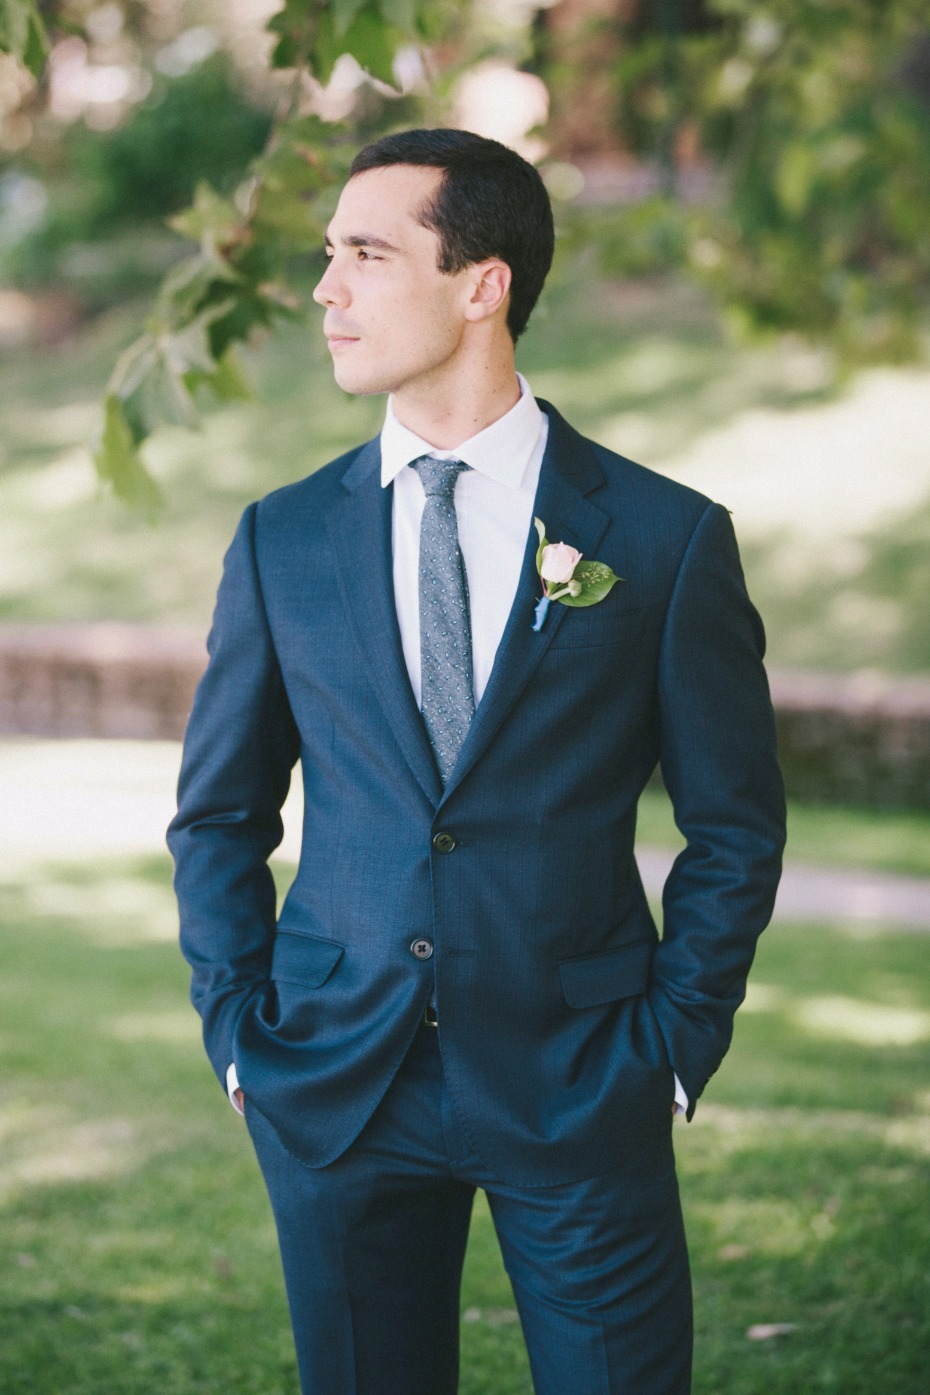 groom in classic navy wedding suit